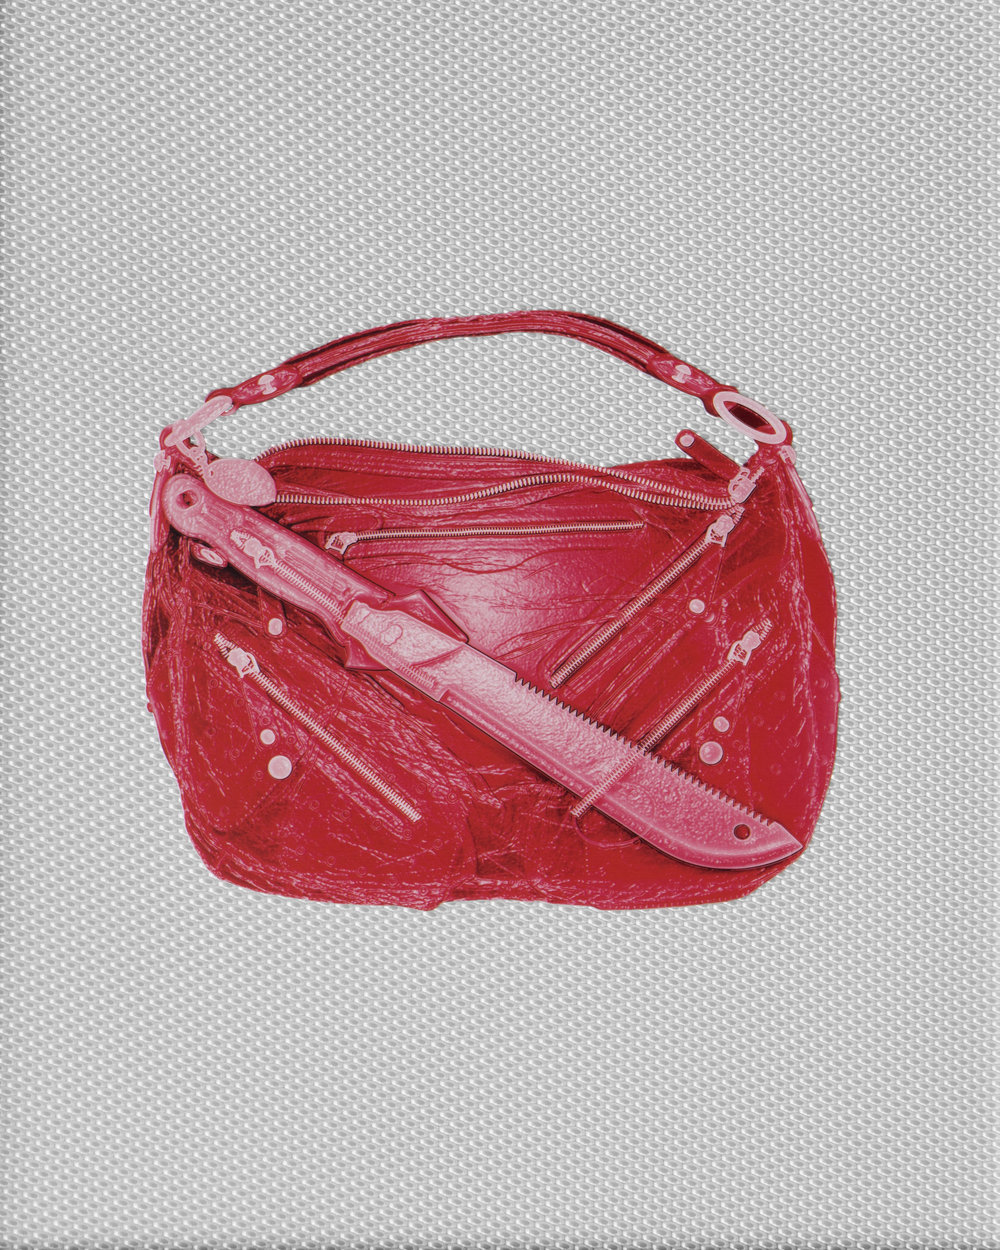 Crimson Tod's Handbag With Machete